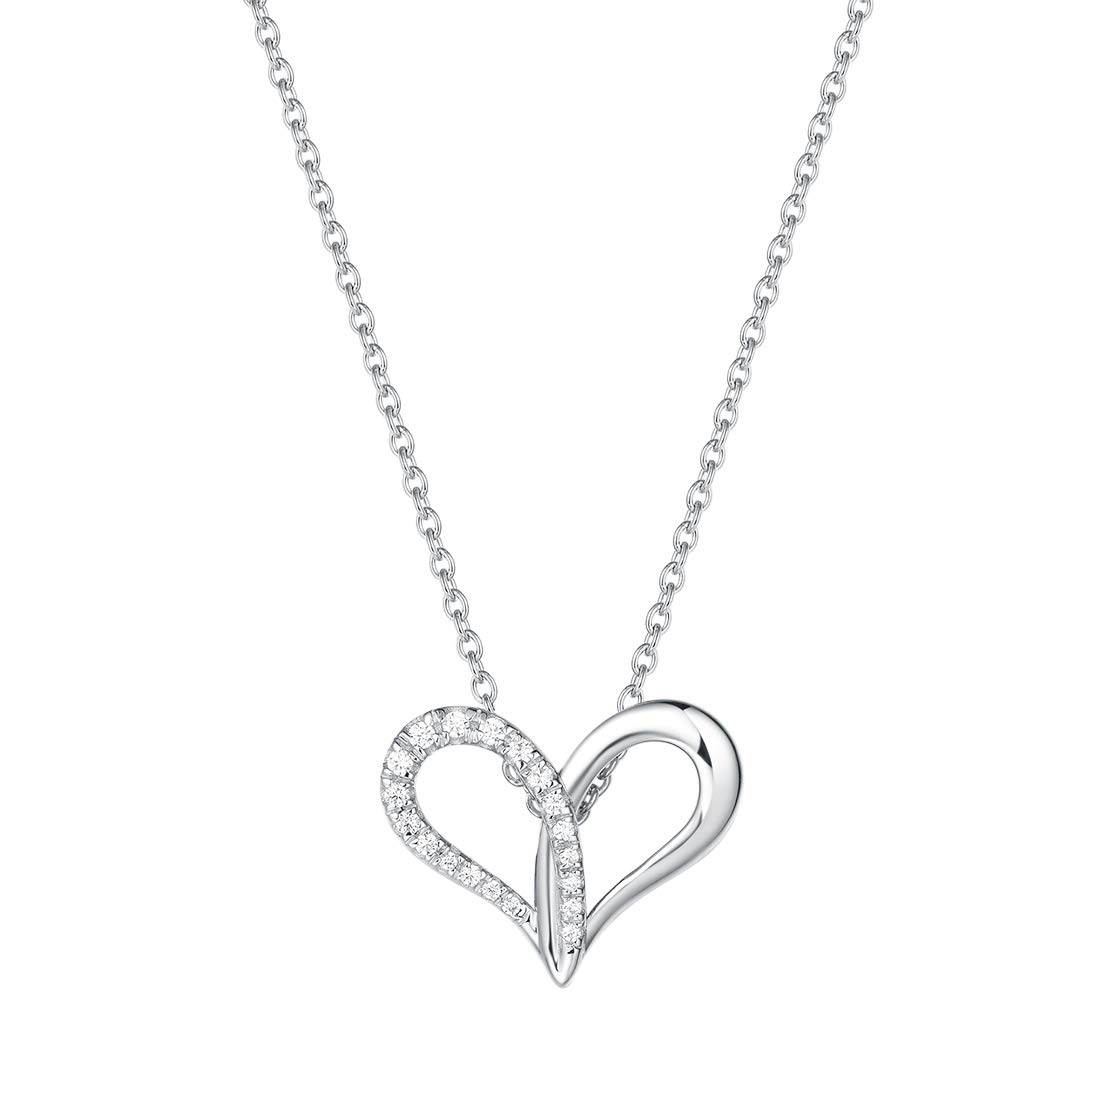 """FANCIME 925 Sterling Silver Open Loving Heart Cubic Zirconia CZ Dainty Forever Love Pendant Necklace for Women Girls, 16"""" + 2"""" Extender"""